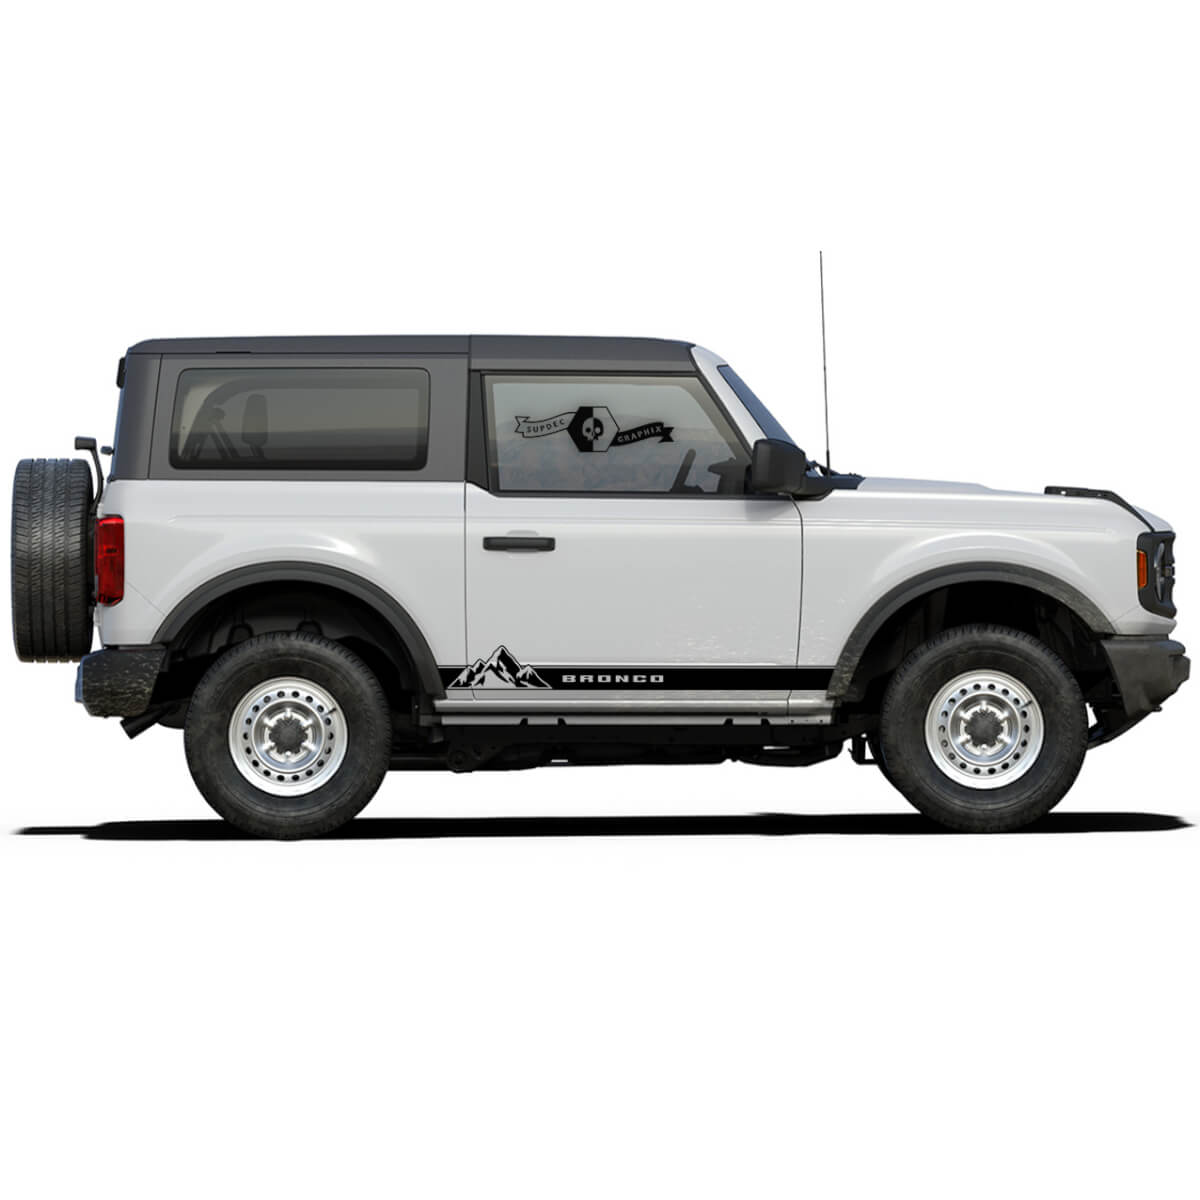 Pair of Mountains Style Rocker Panel Side Decals Stickers for Ford Bronco 2021 - now